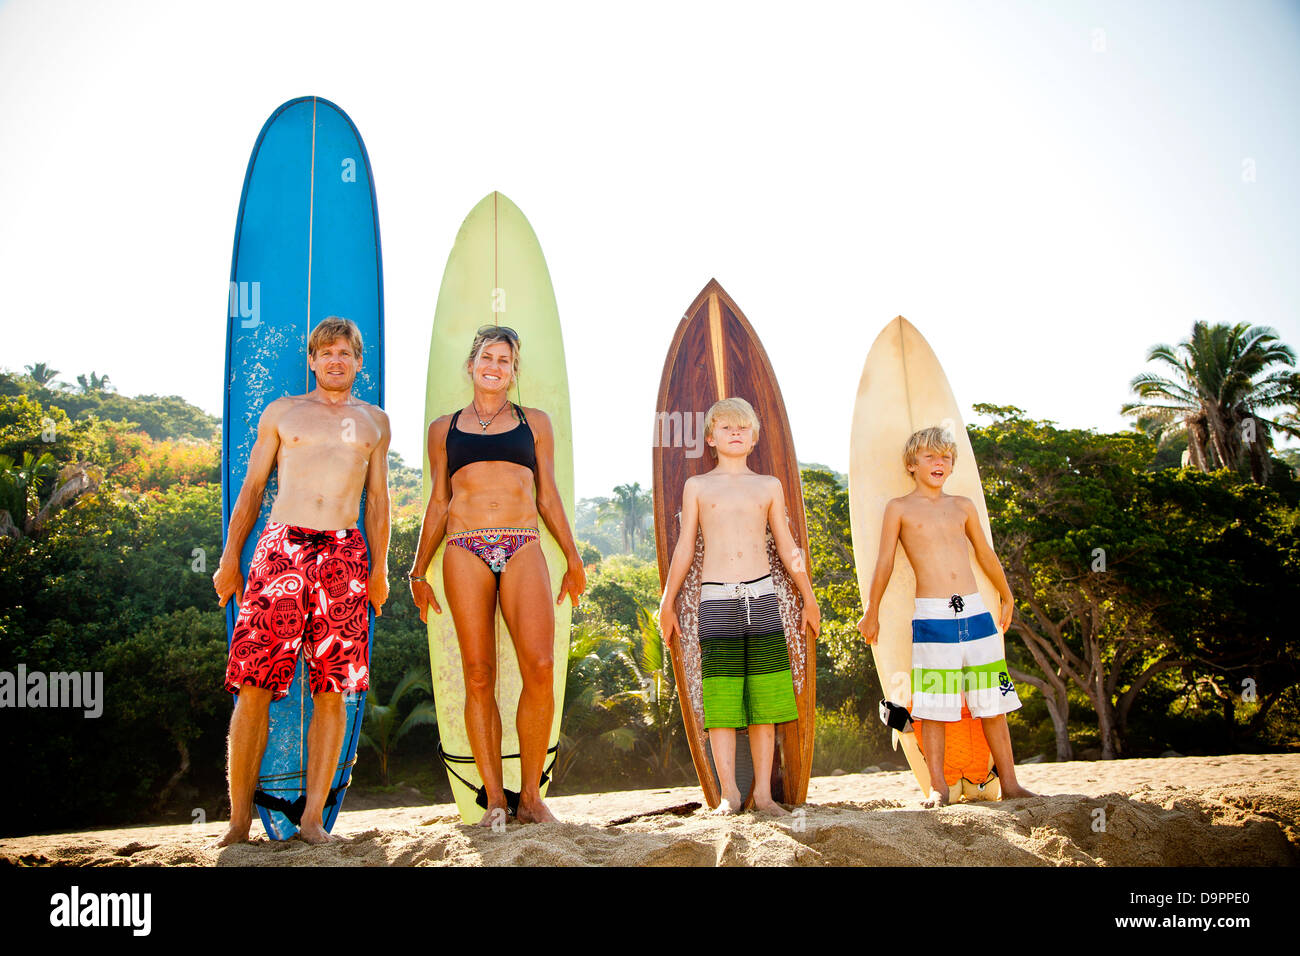 Family of four standing in front of surfboards Stock Photo